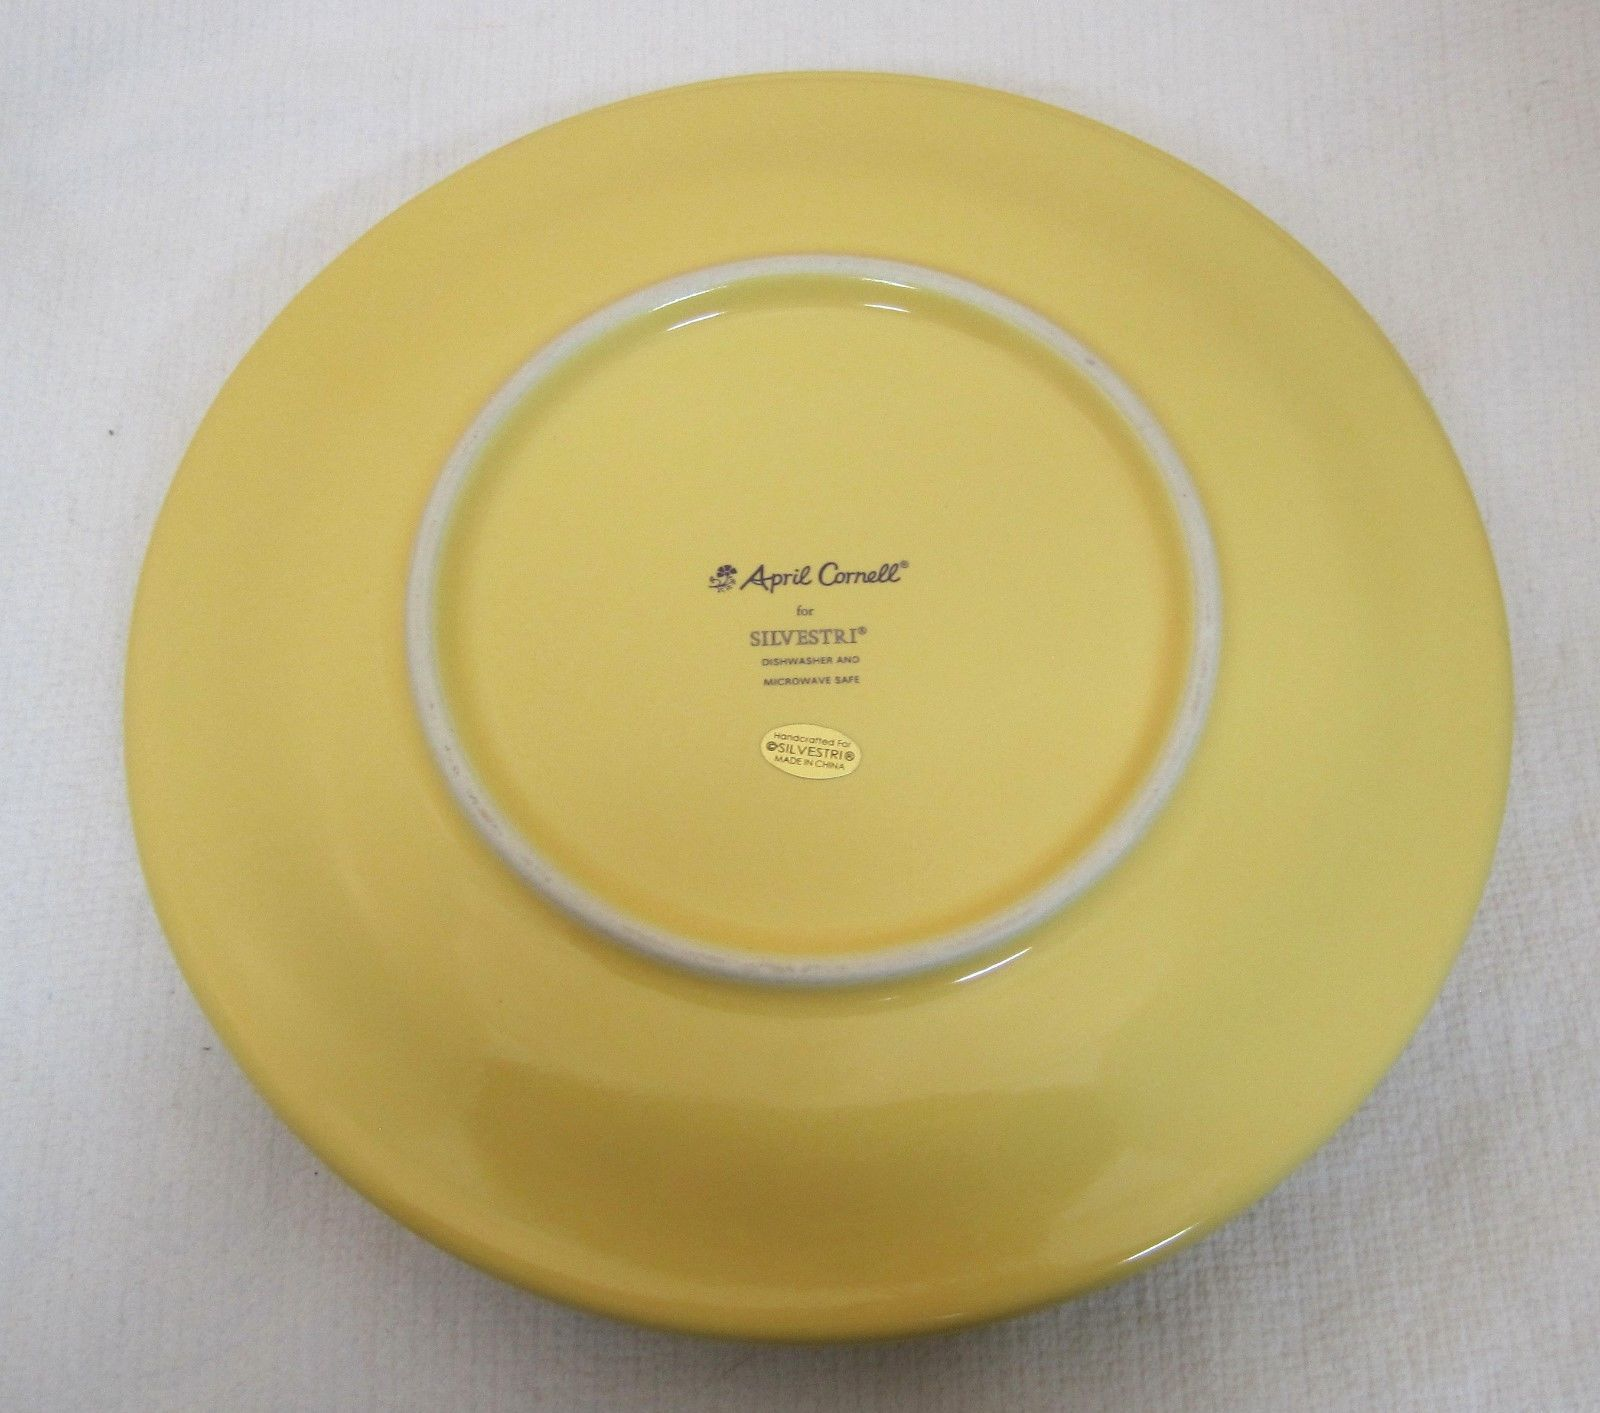 ... 4 April Cornell For Silvestri Yellow w Flower Plate 8 Inch NEW with foil TAG ... & 4 April Cornell For Silvestri Yellow w and 12 similar items